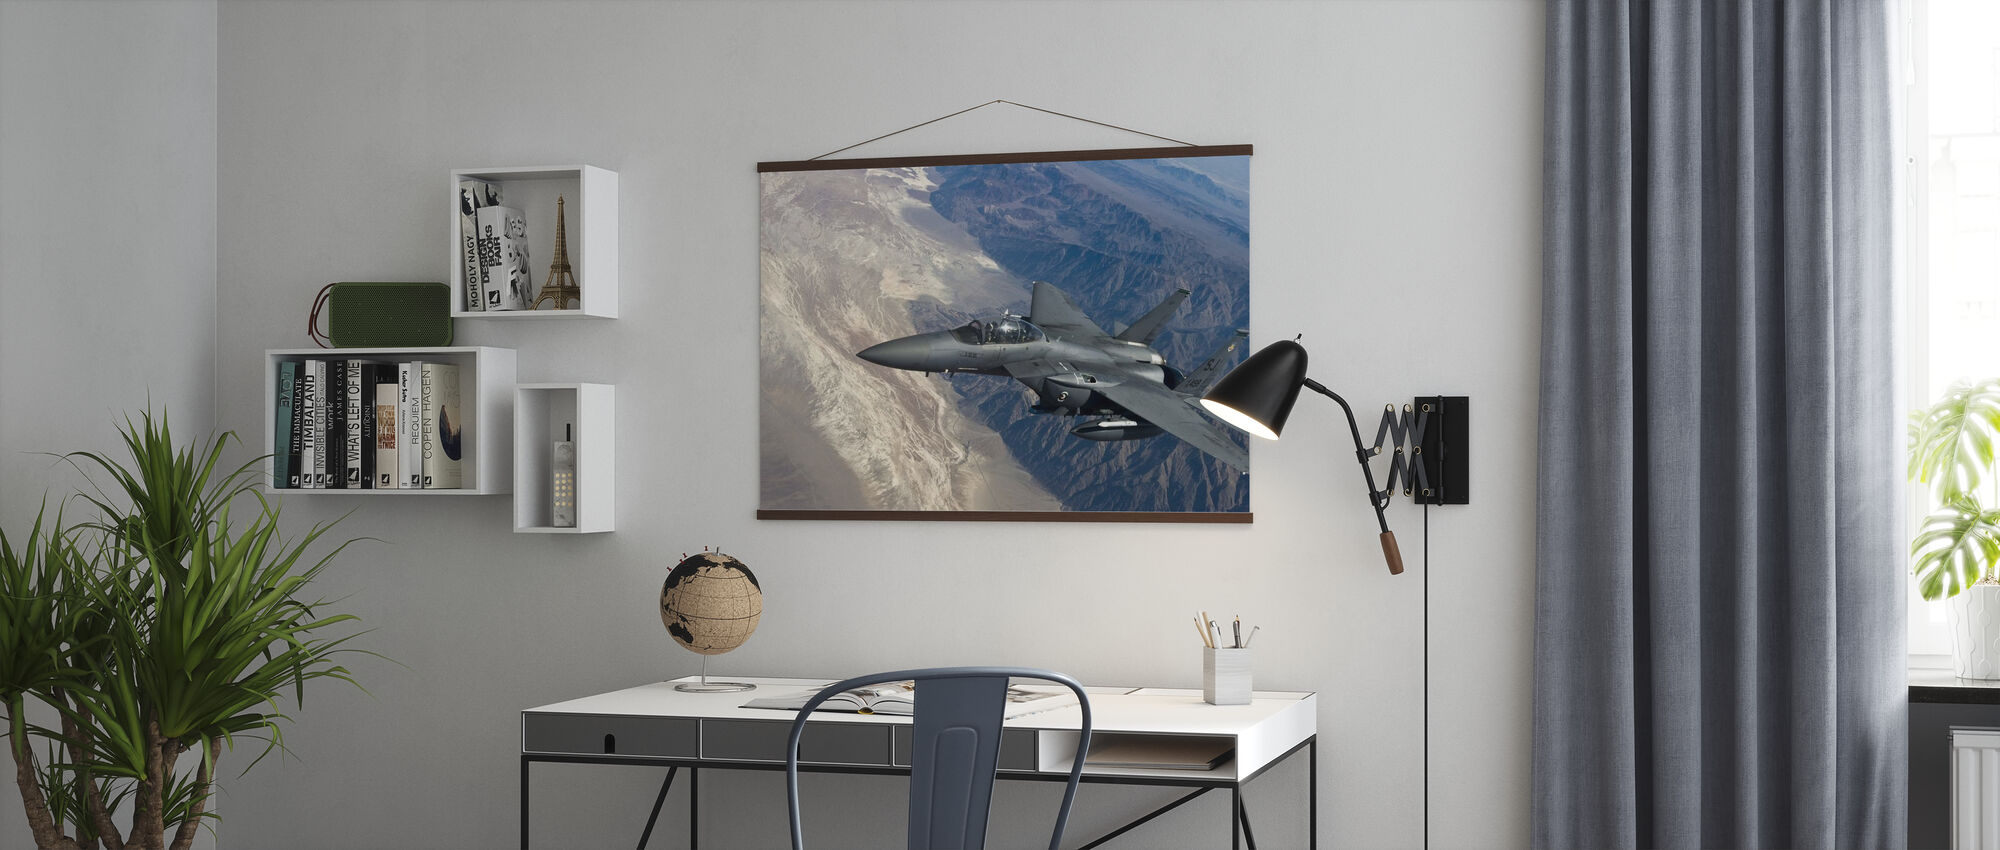 Airborne Fighter Jet - Poster - Office